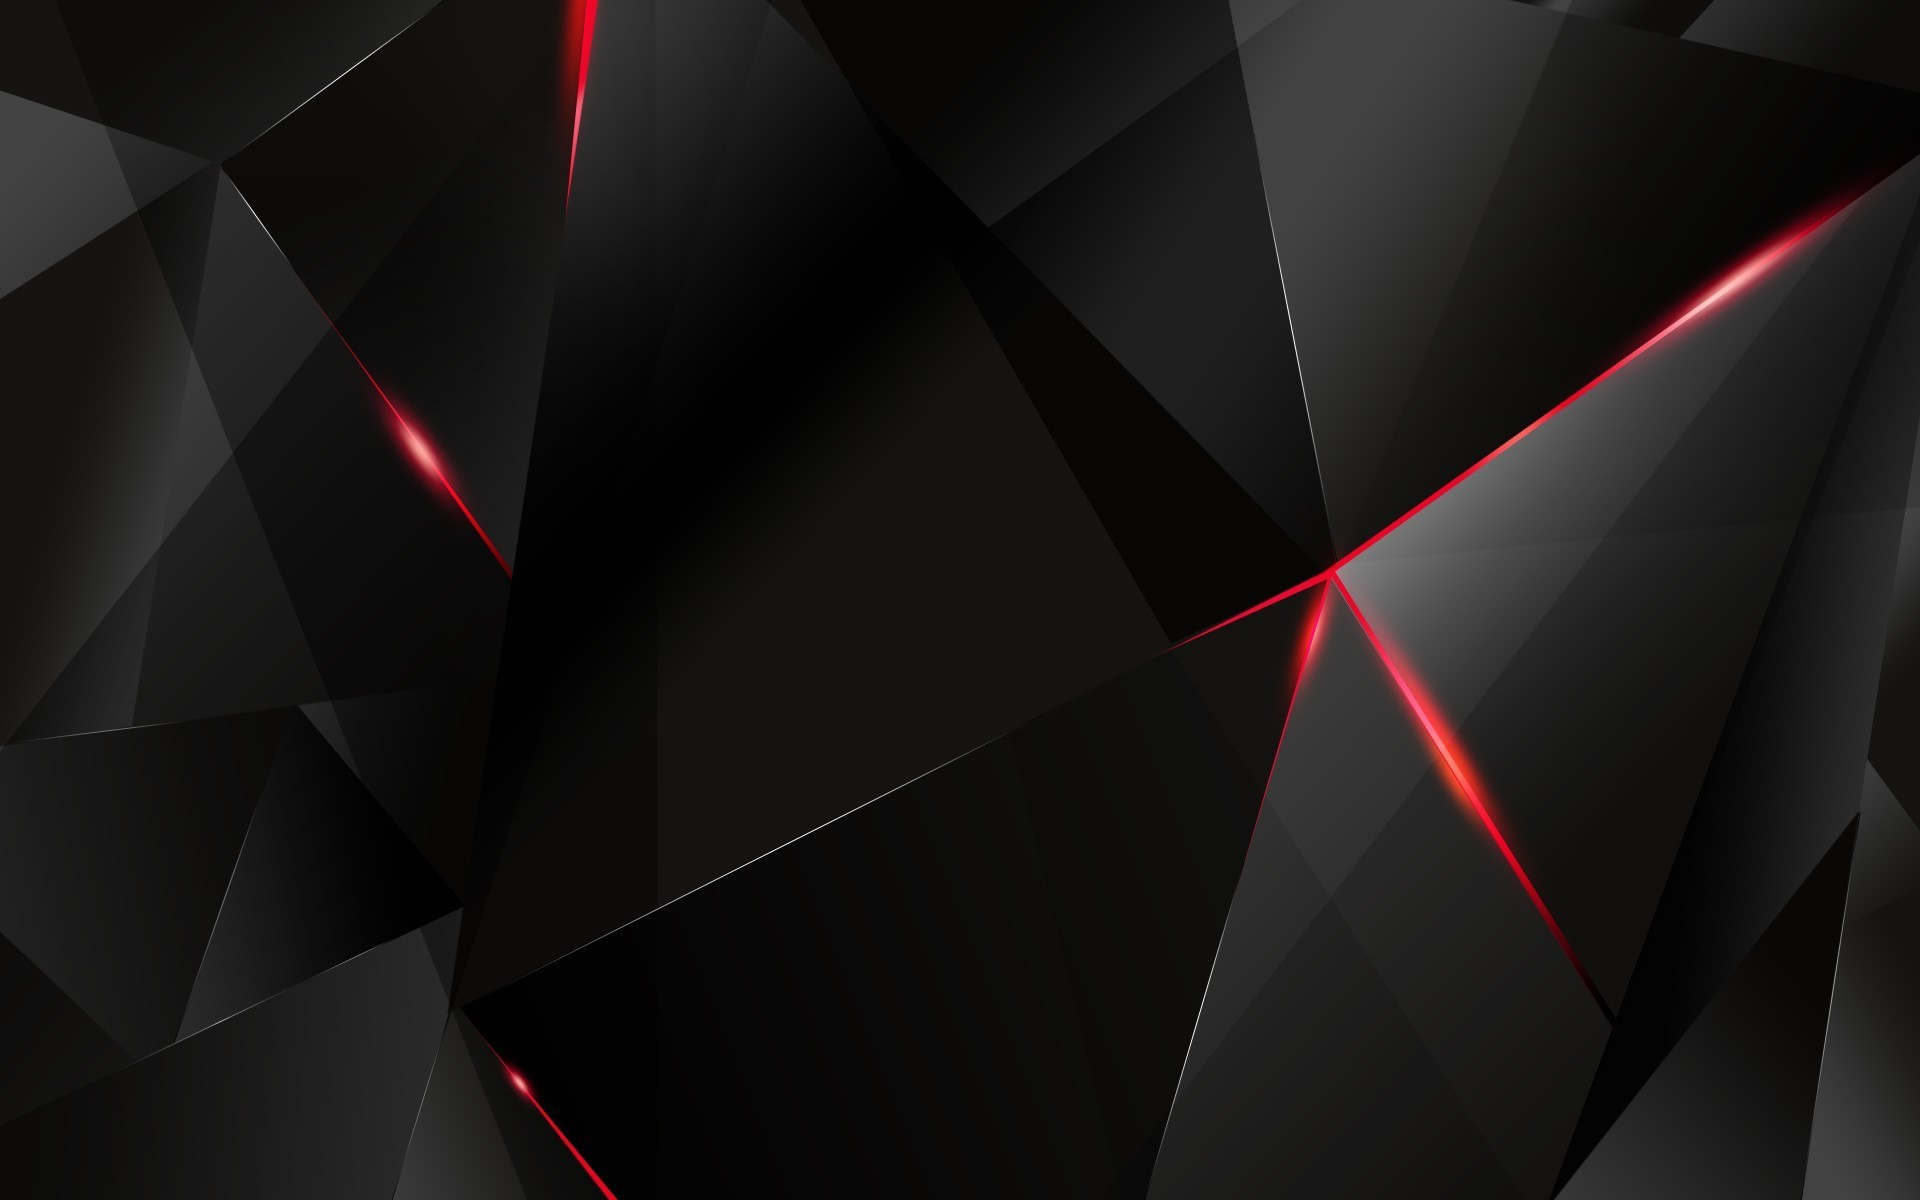 Black And Red >> Black And Red Wallpaper 27653 1920x1200 Px Hdwallsource Com